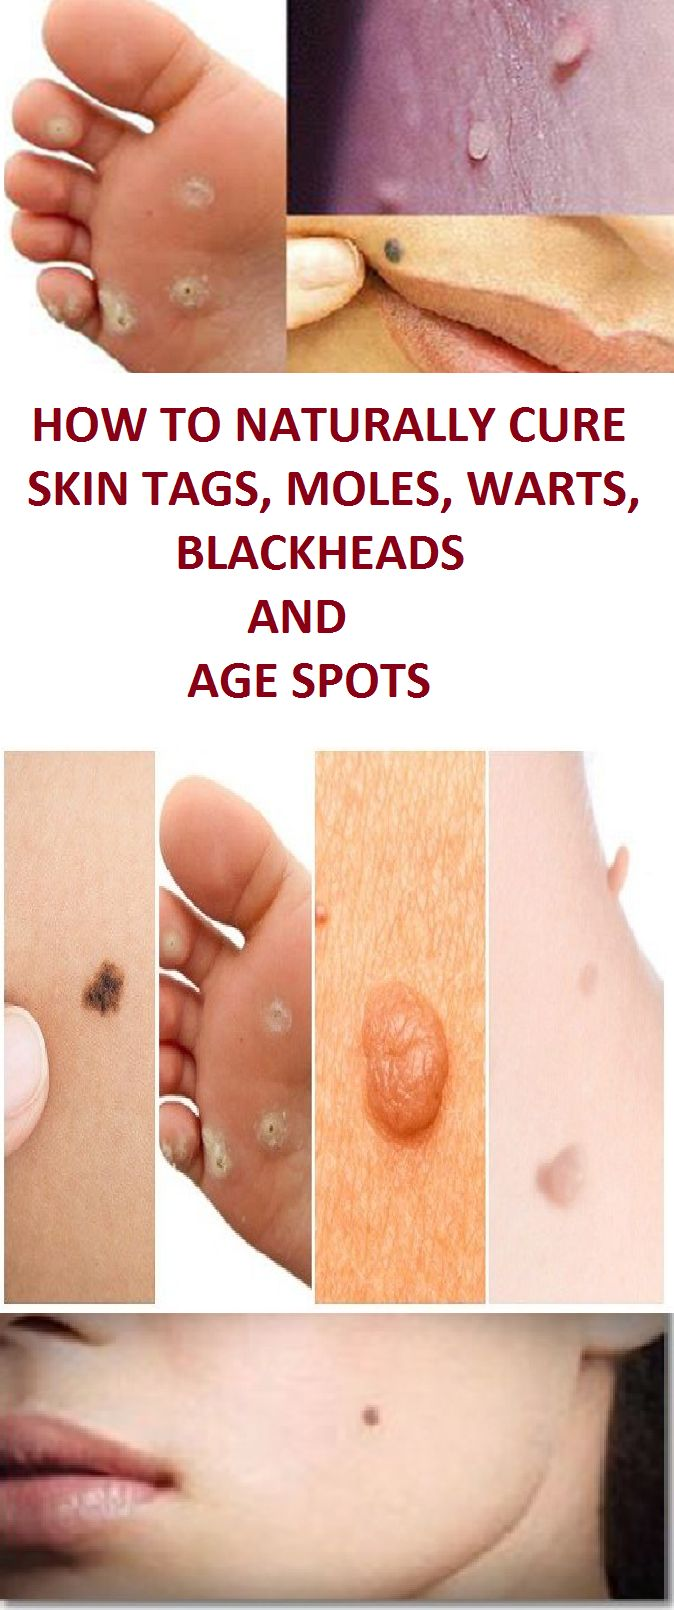 Here are some of the most common skin conditions and the most effective homemade remedies for treating them: